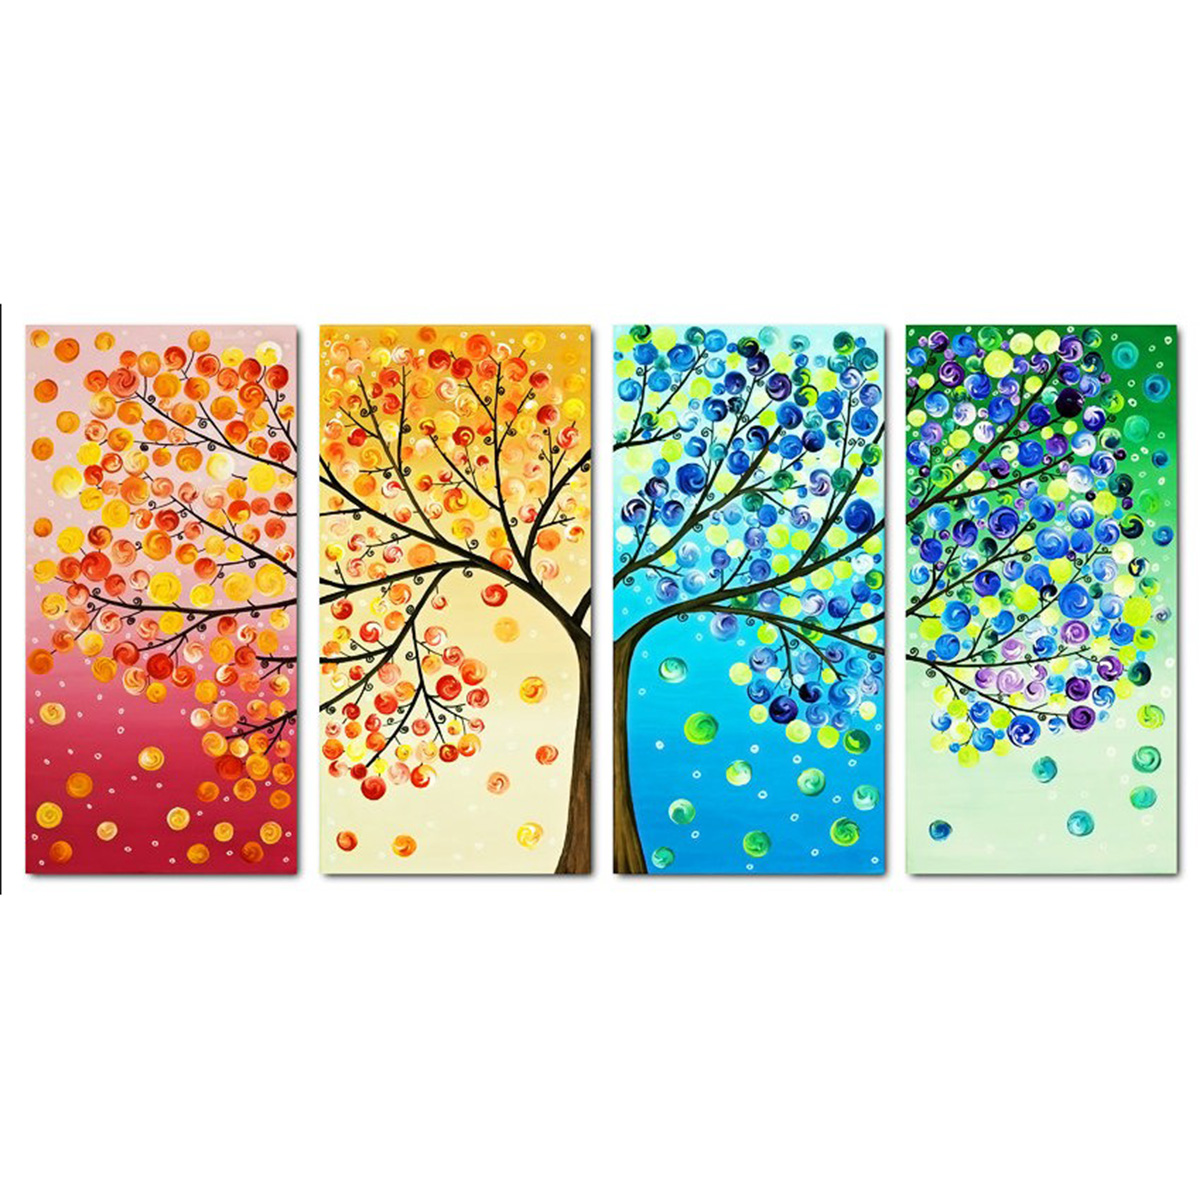 2017 Fashion Colorful Tree Embroidery DIY Counted Cross Stitch Kit Handmade Needlework Home Room Decoration Cloth Size 103*57cm